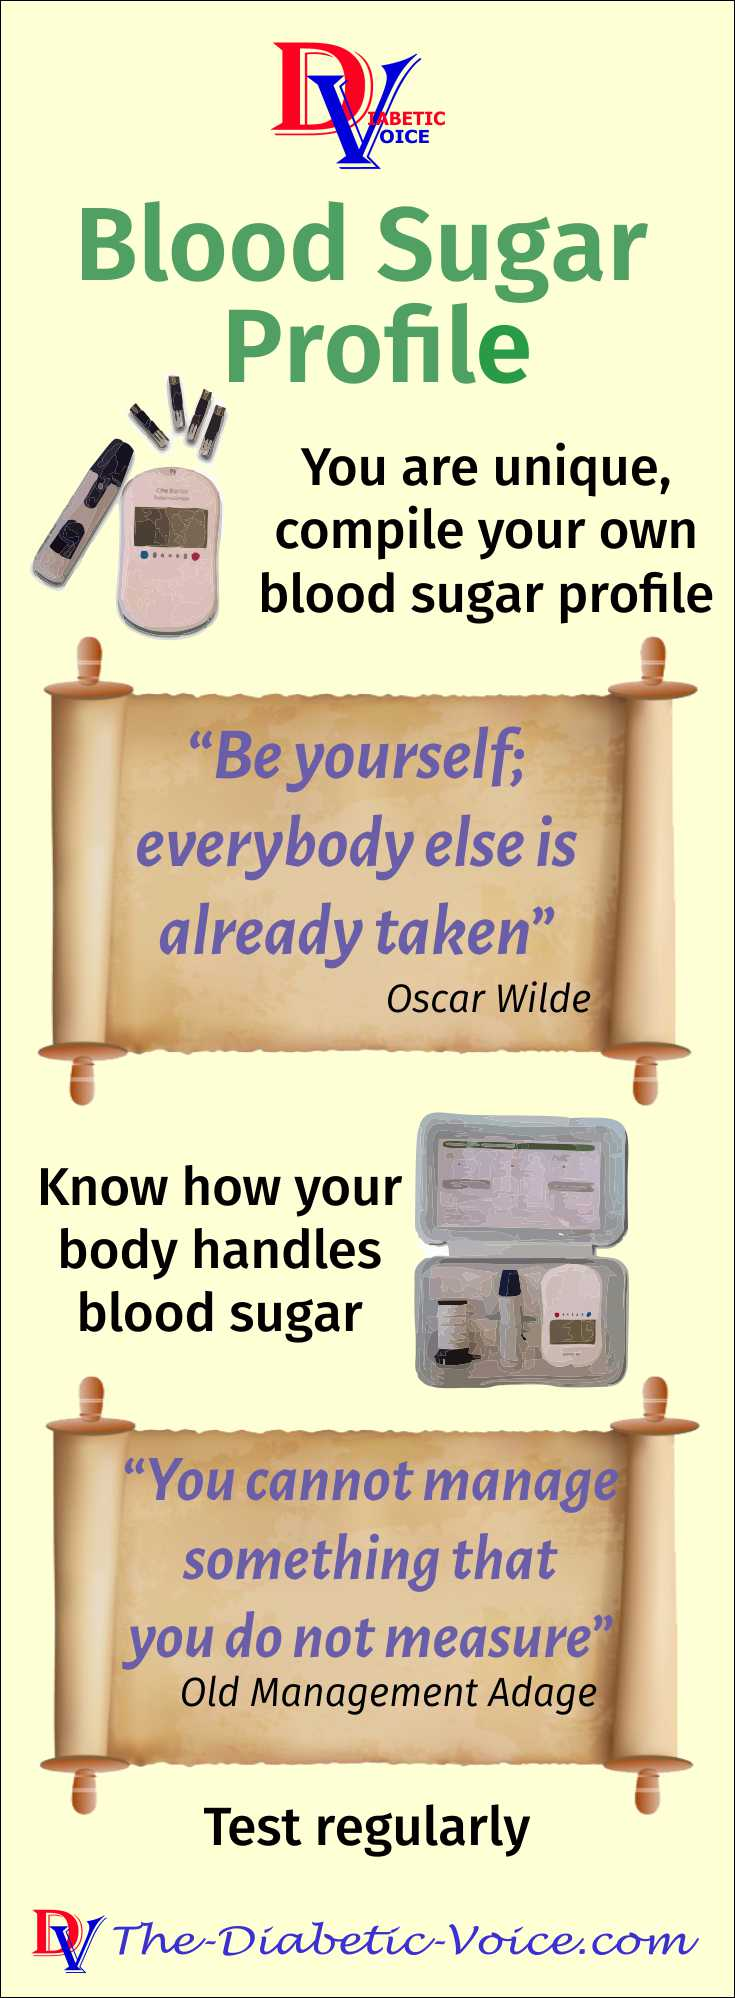 Blood Sugar Profile in a Nutshell #BloodSugar #Diabetes